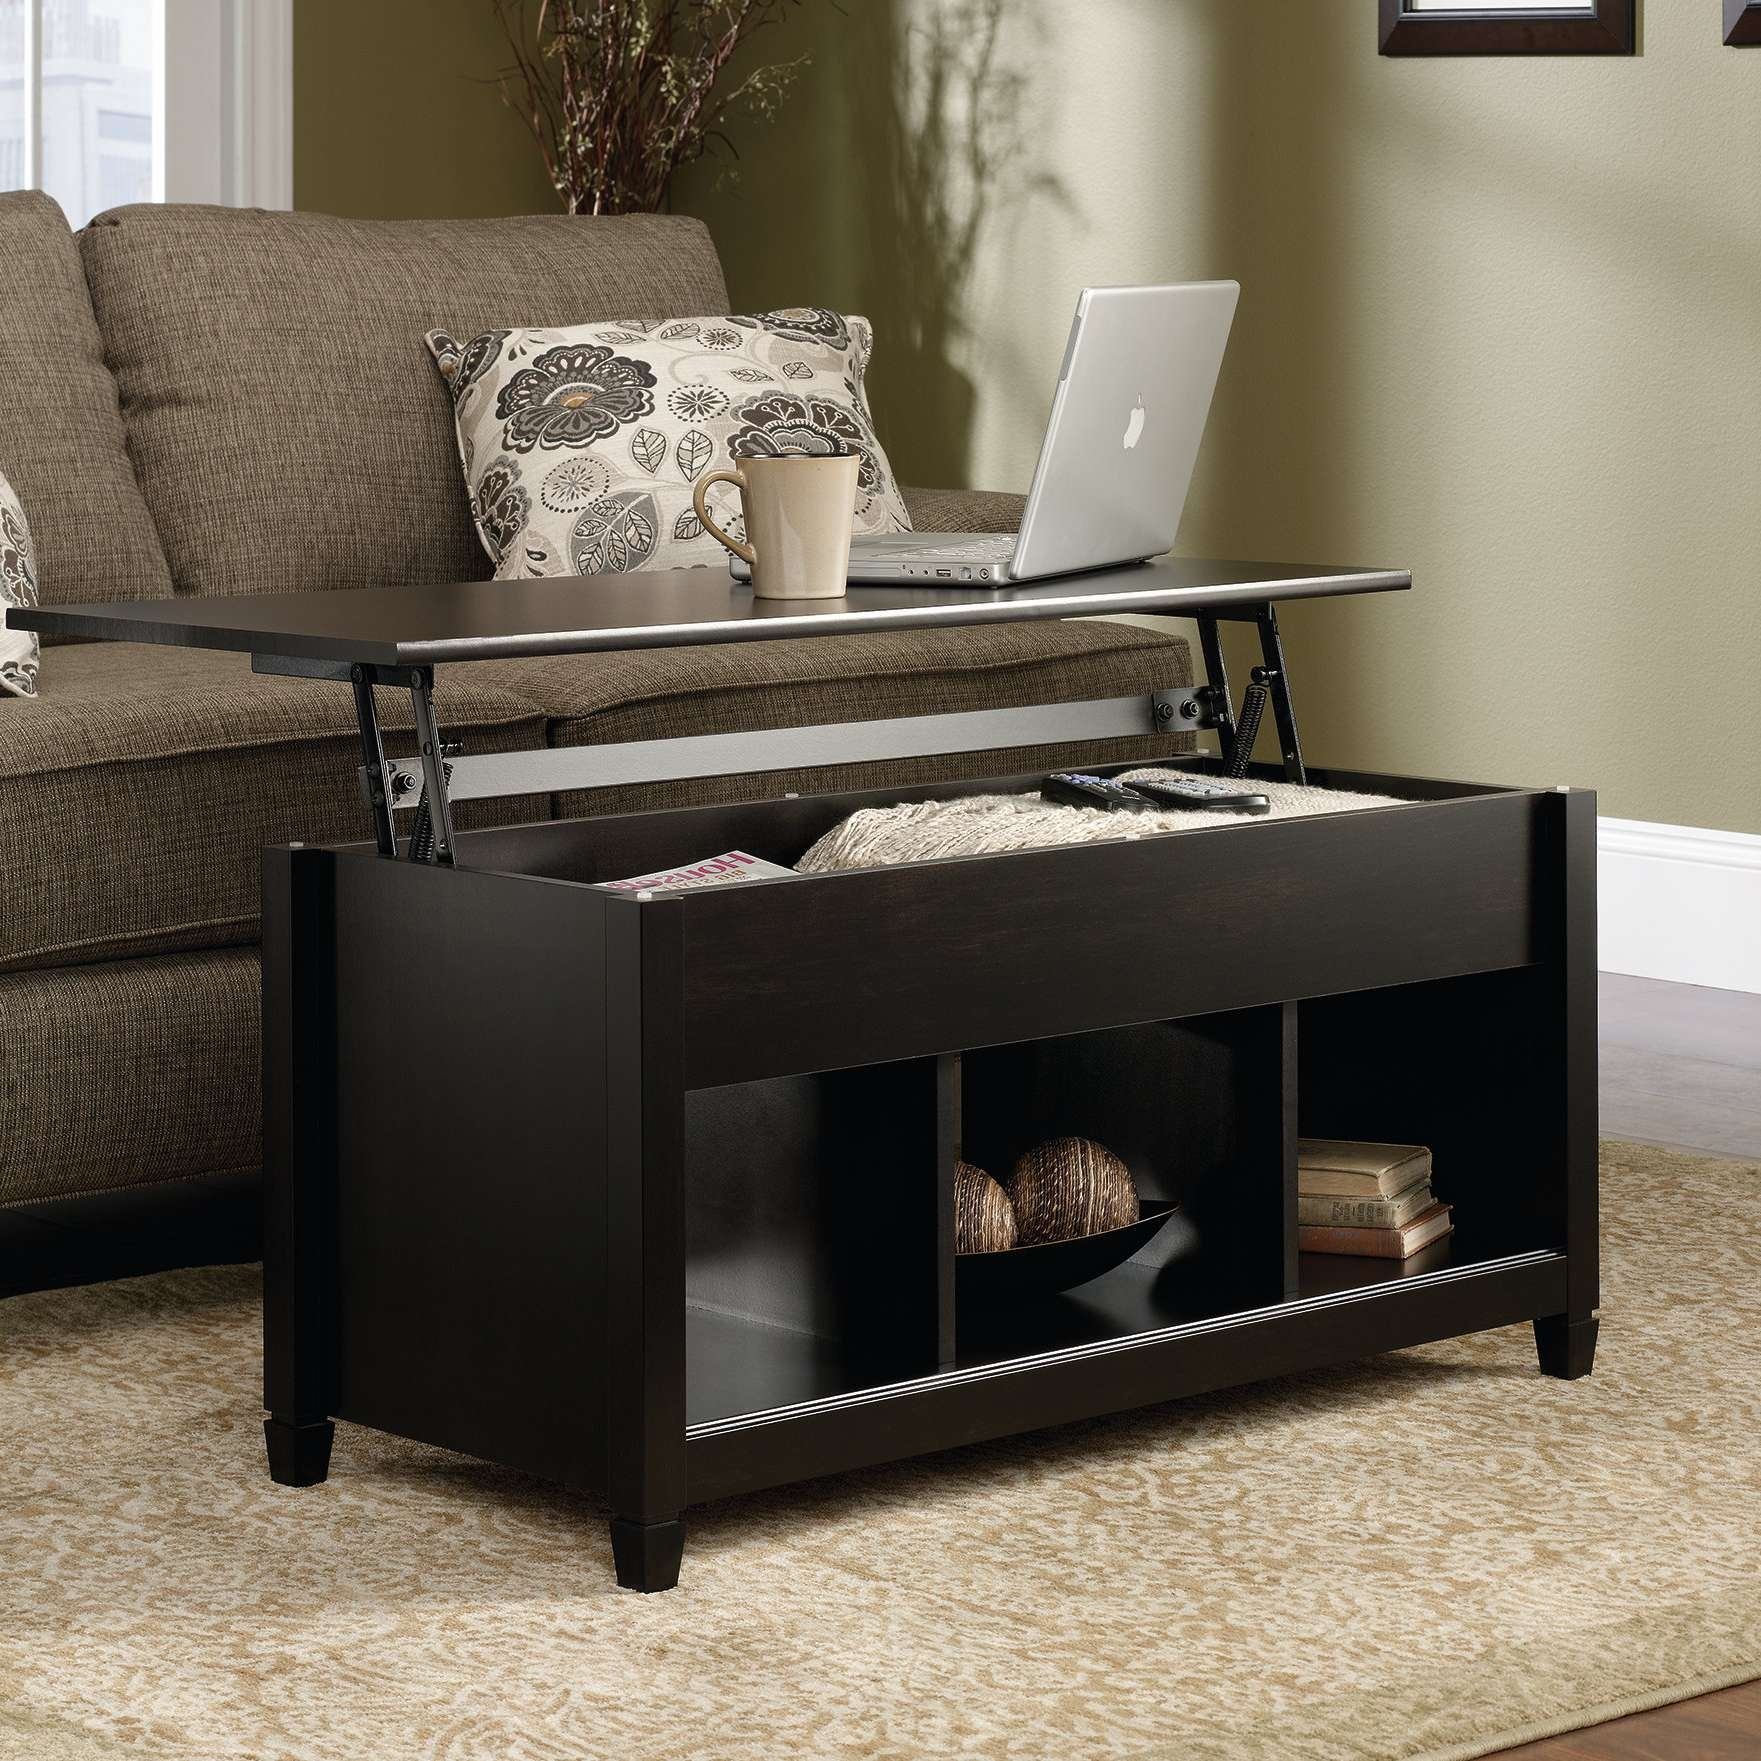 Wayfair Intended For 2018 Coffee Tables With Lifting Top (View 20 of 20)